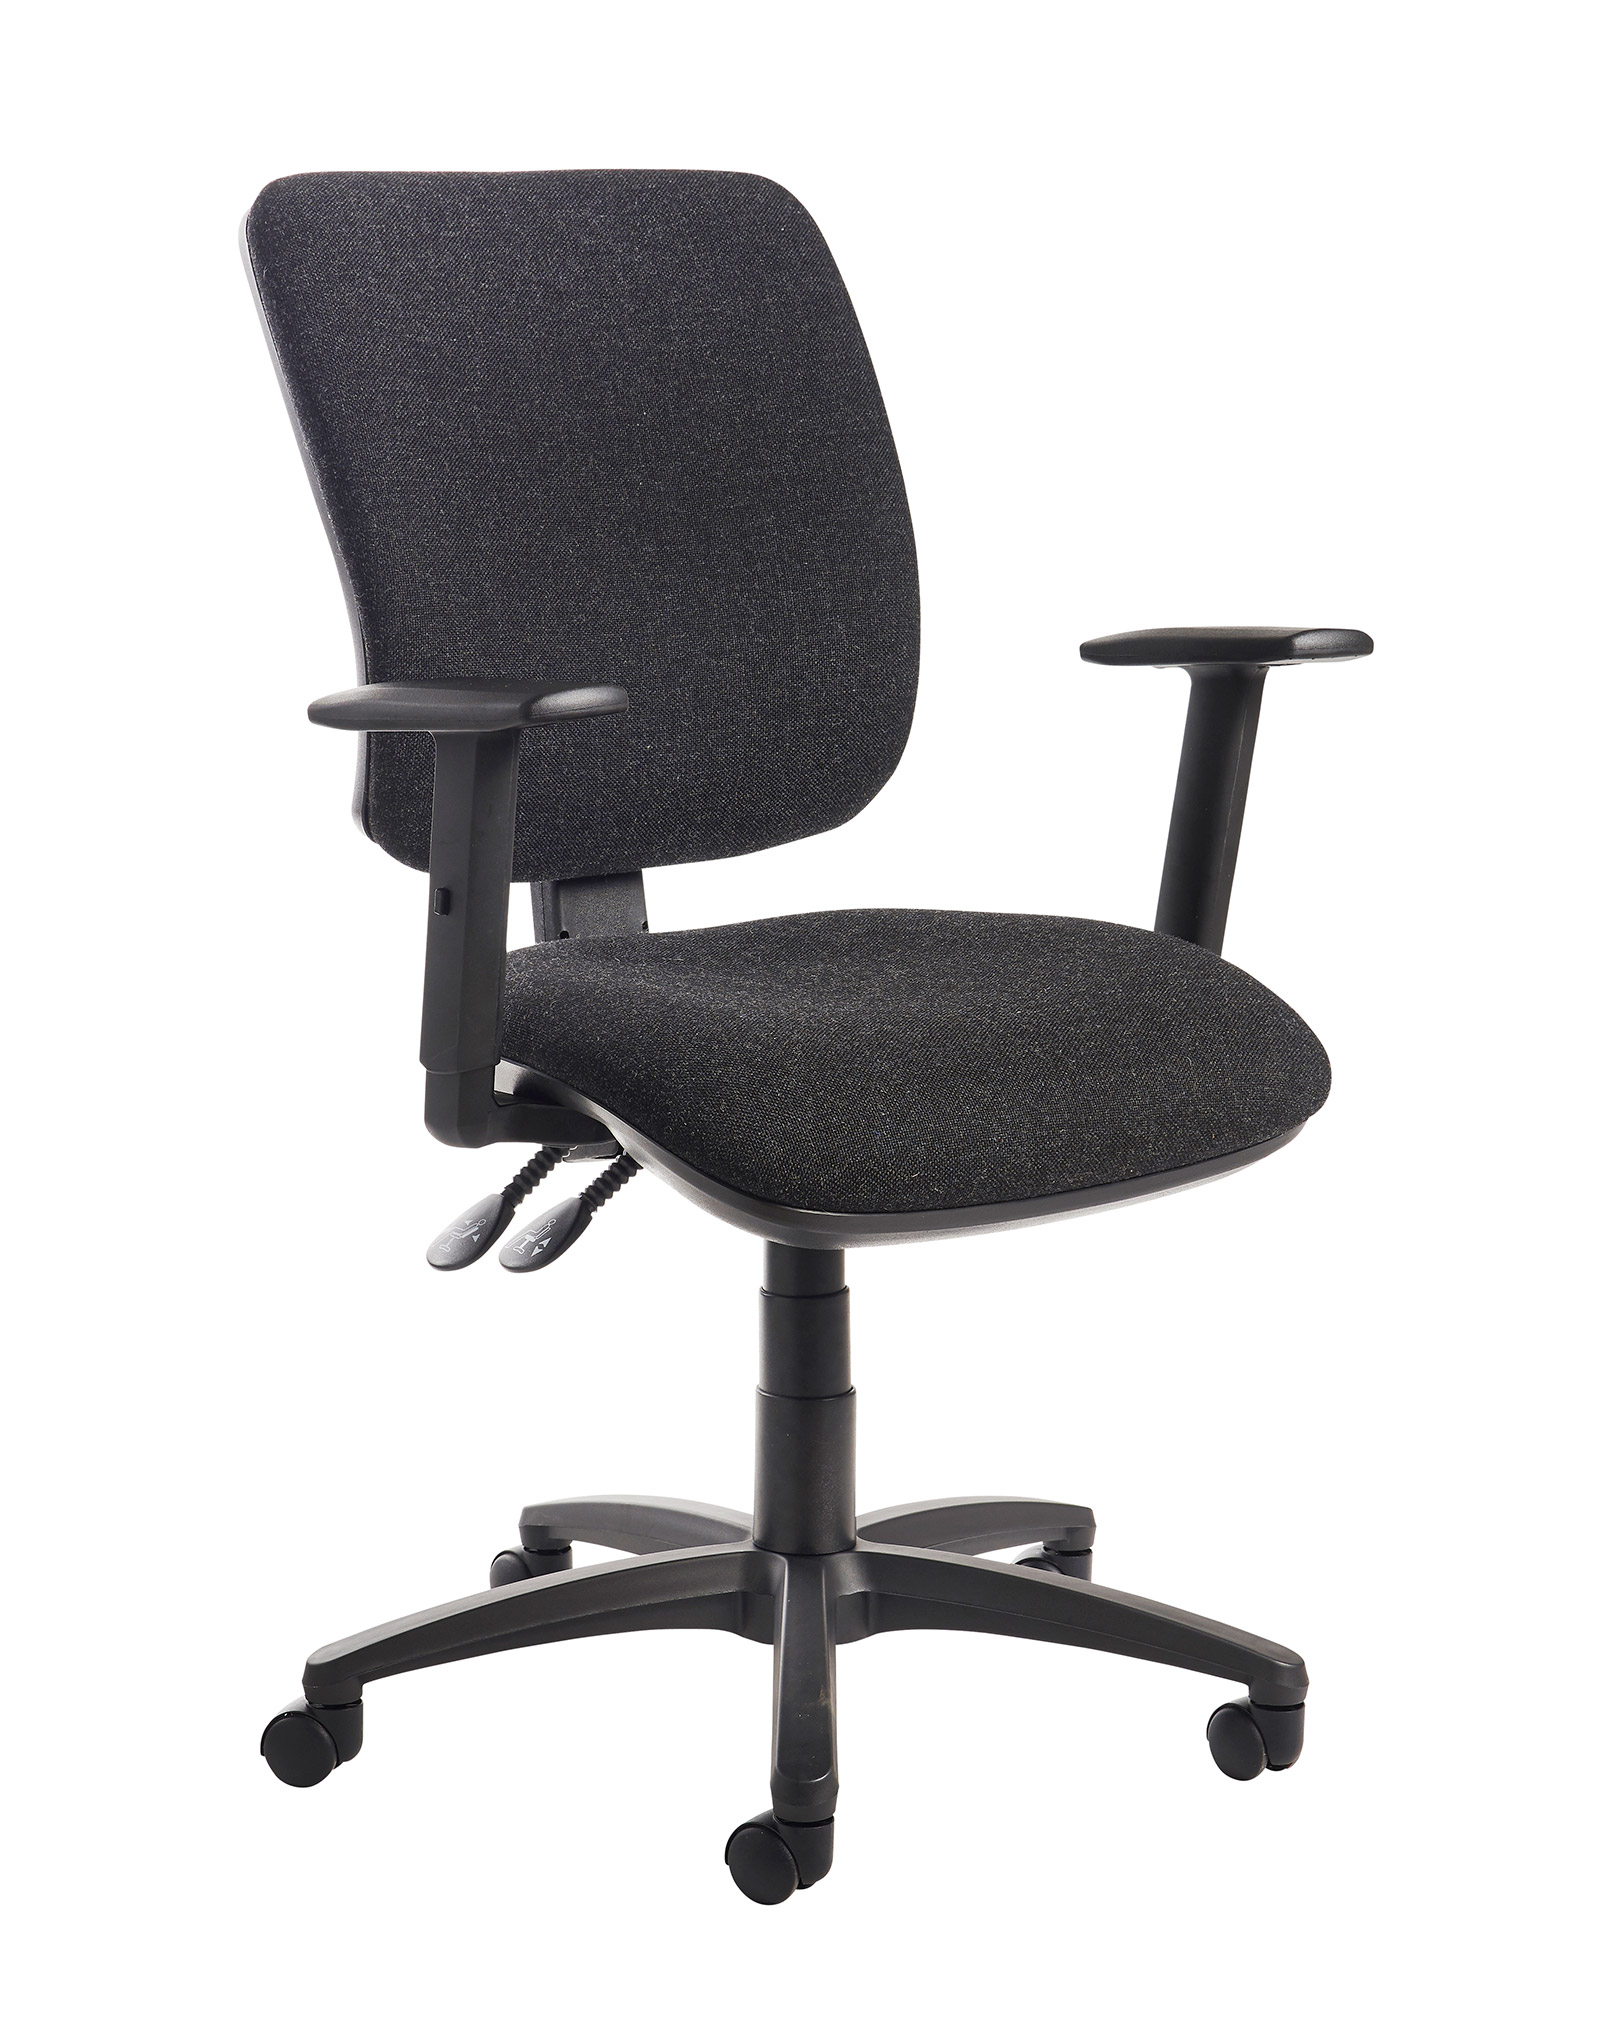 best office chair after spinal fusion modern high back chairs for living room senza operator with adjustable arms